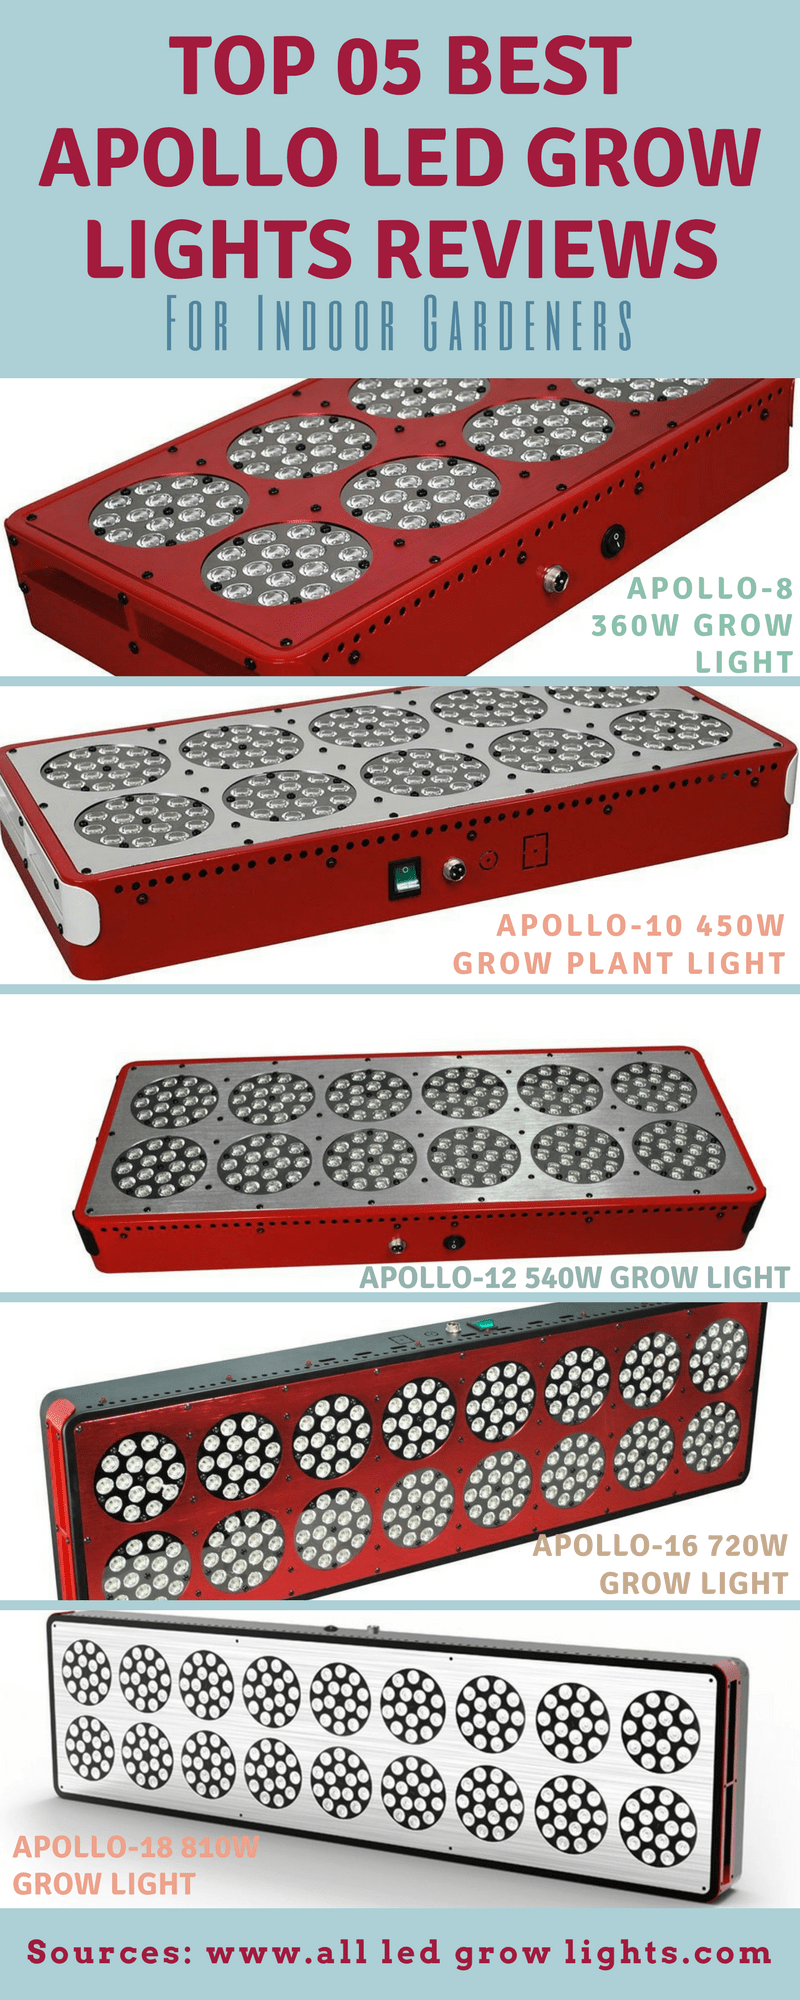 Best Apollo Led Grow lights Reviews infograph